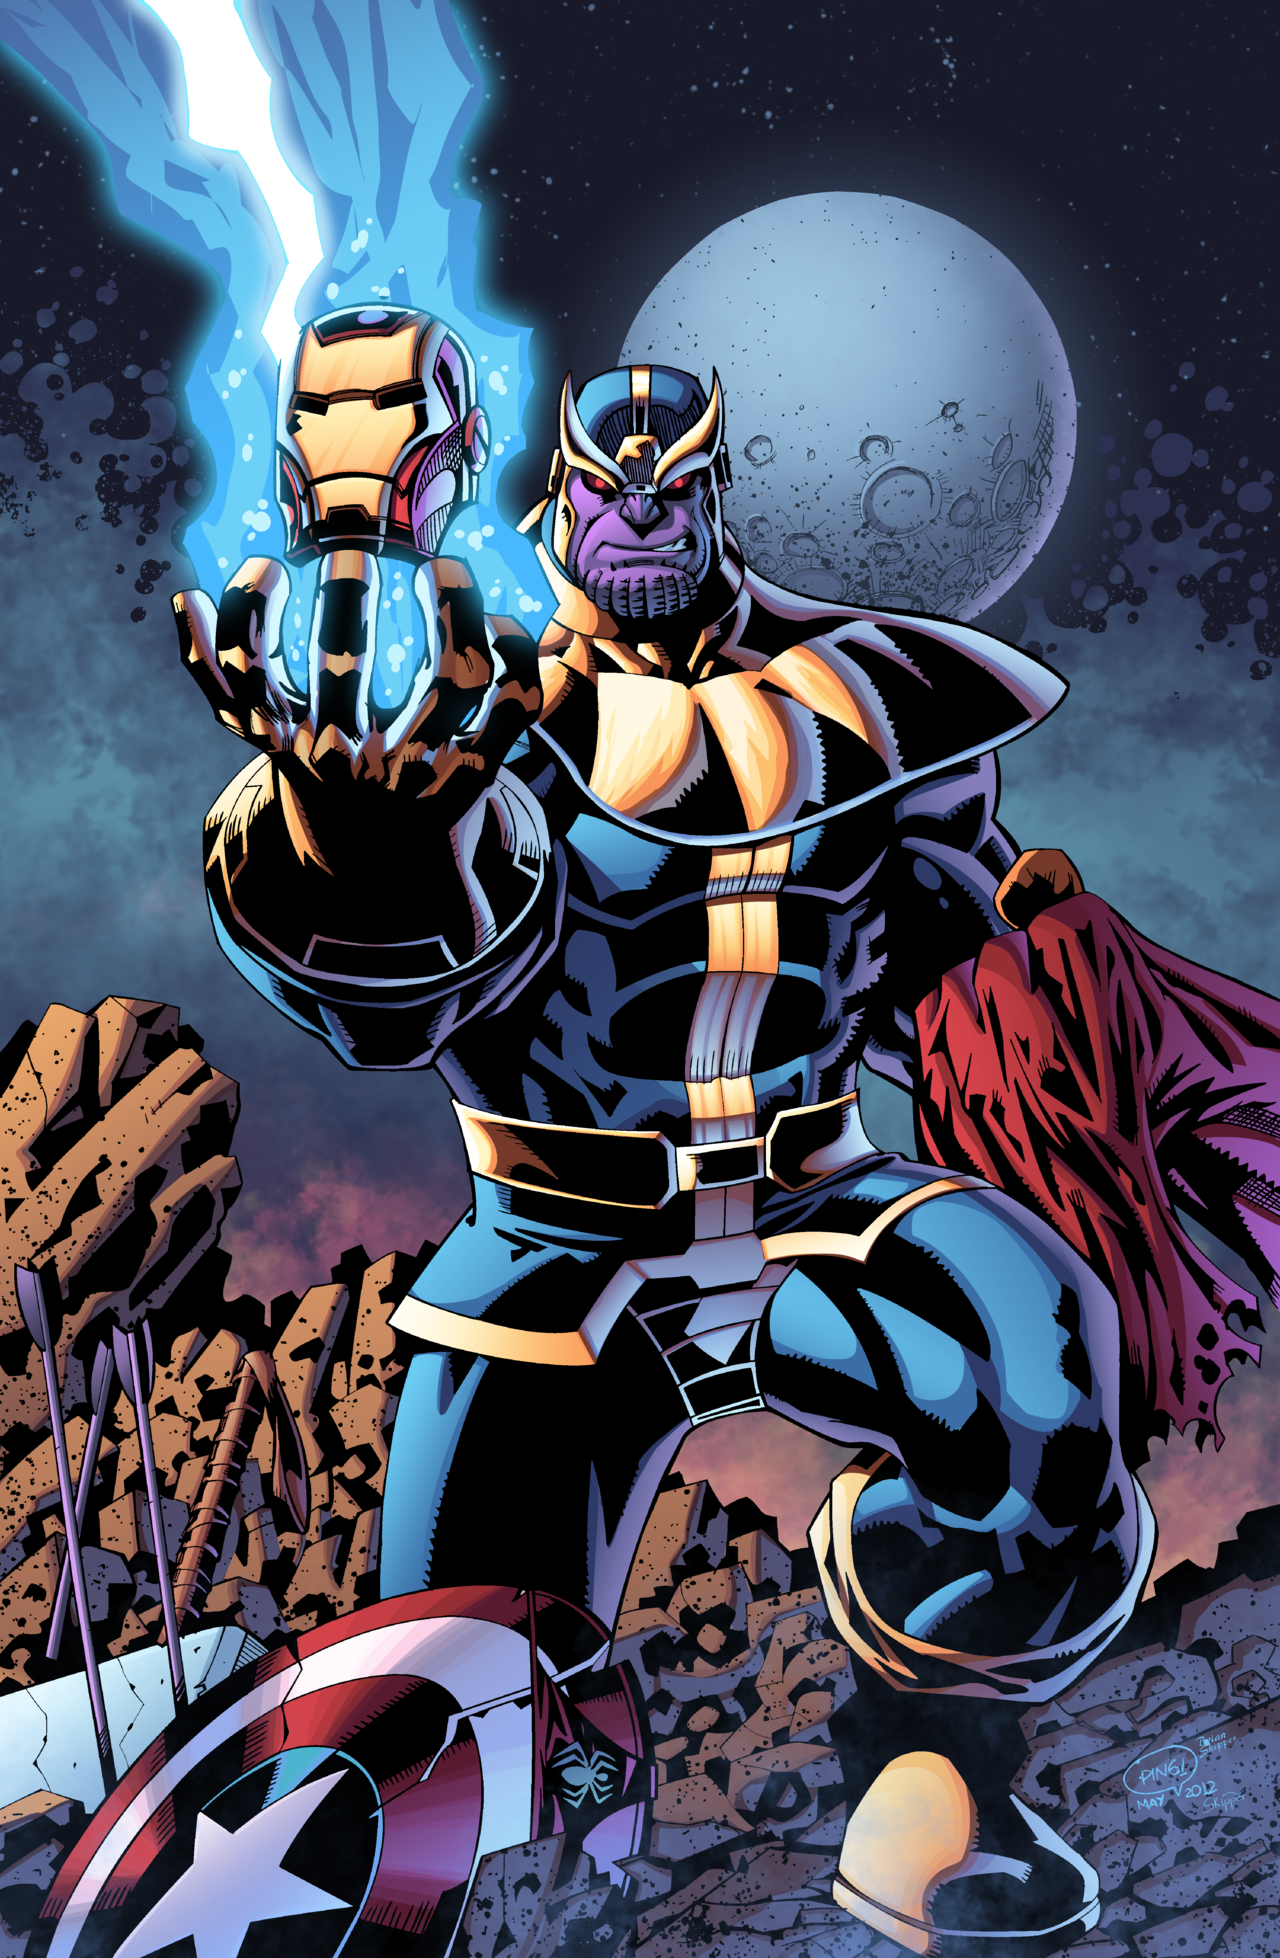 Thanos vs Doomsday | SpaceBattles Forums